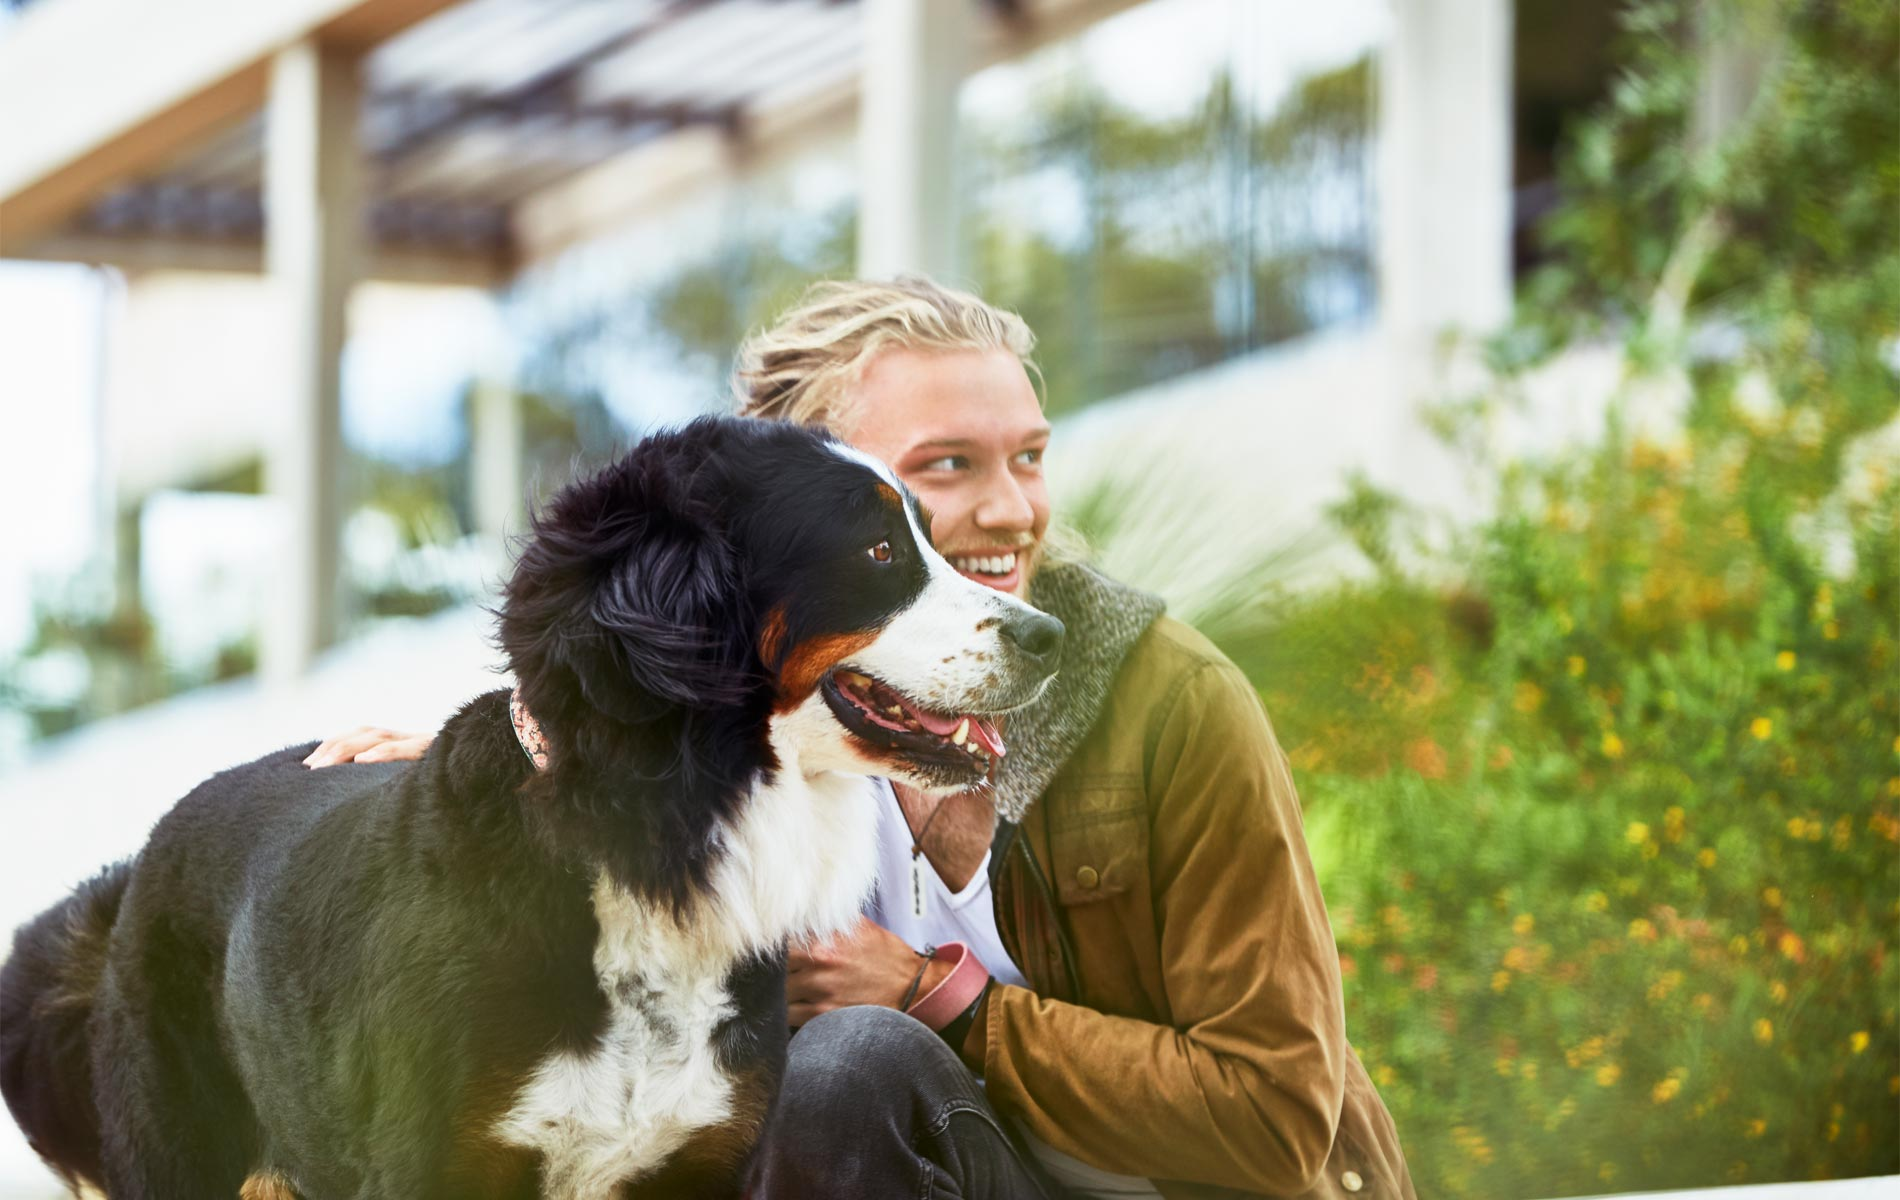 Murdoch student James Norton on campus with his dog